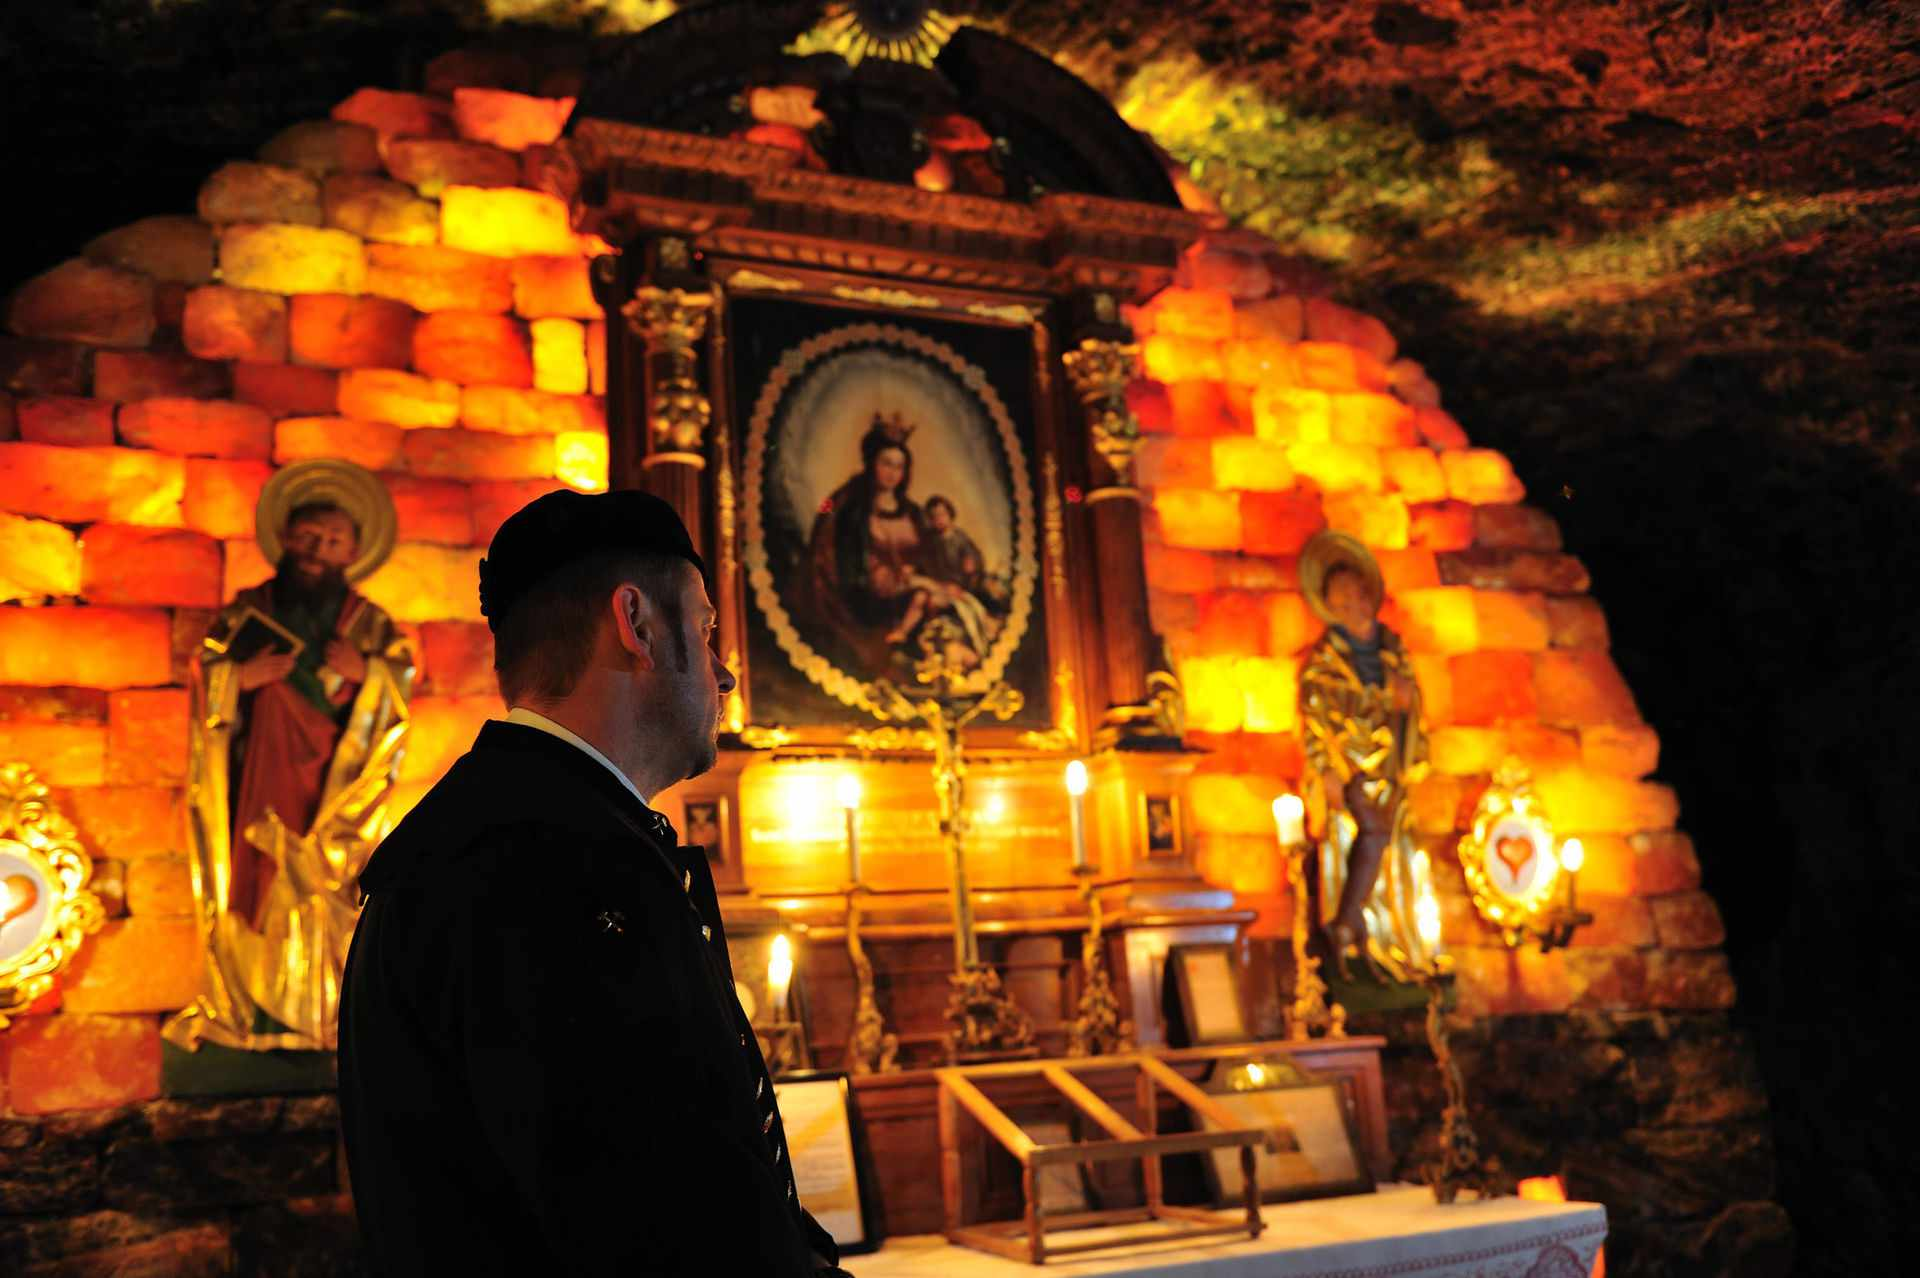 Picture of the Mystical St. Barbara's Chapel in the Altaussee Salt Mine